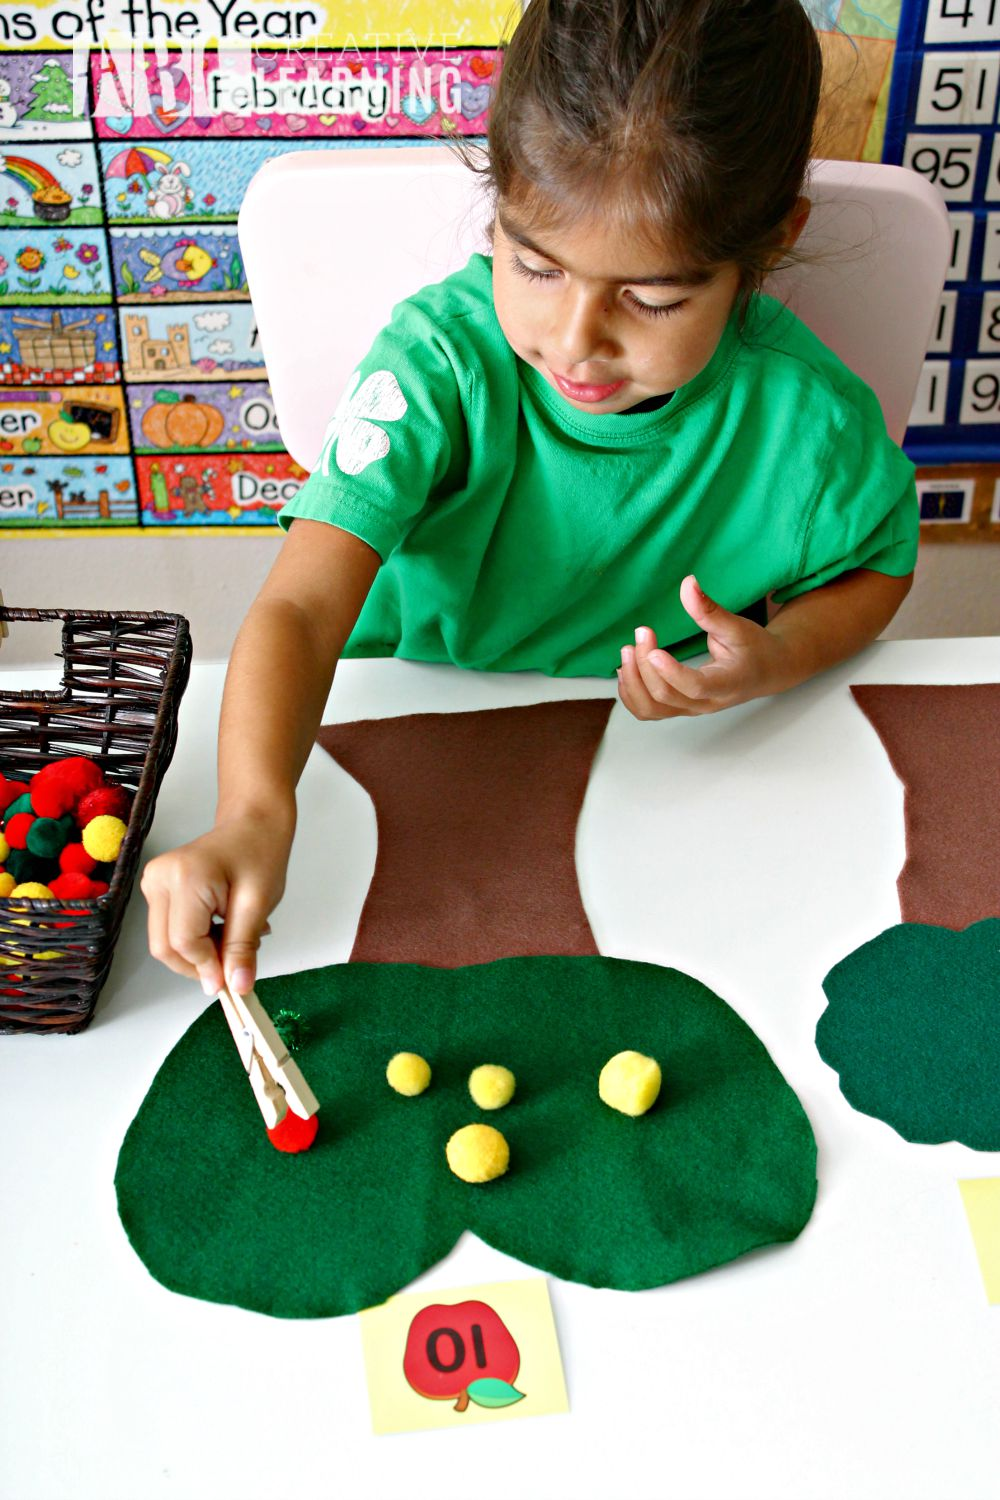 DIY Felt Apple Counting and Fine Motor Skills Activity math for preschoolers